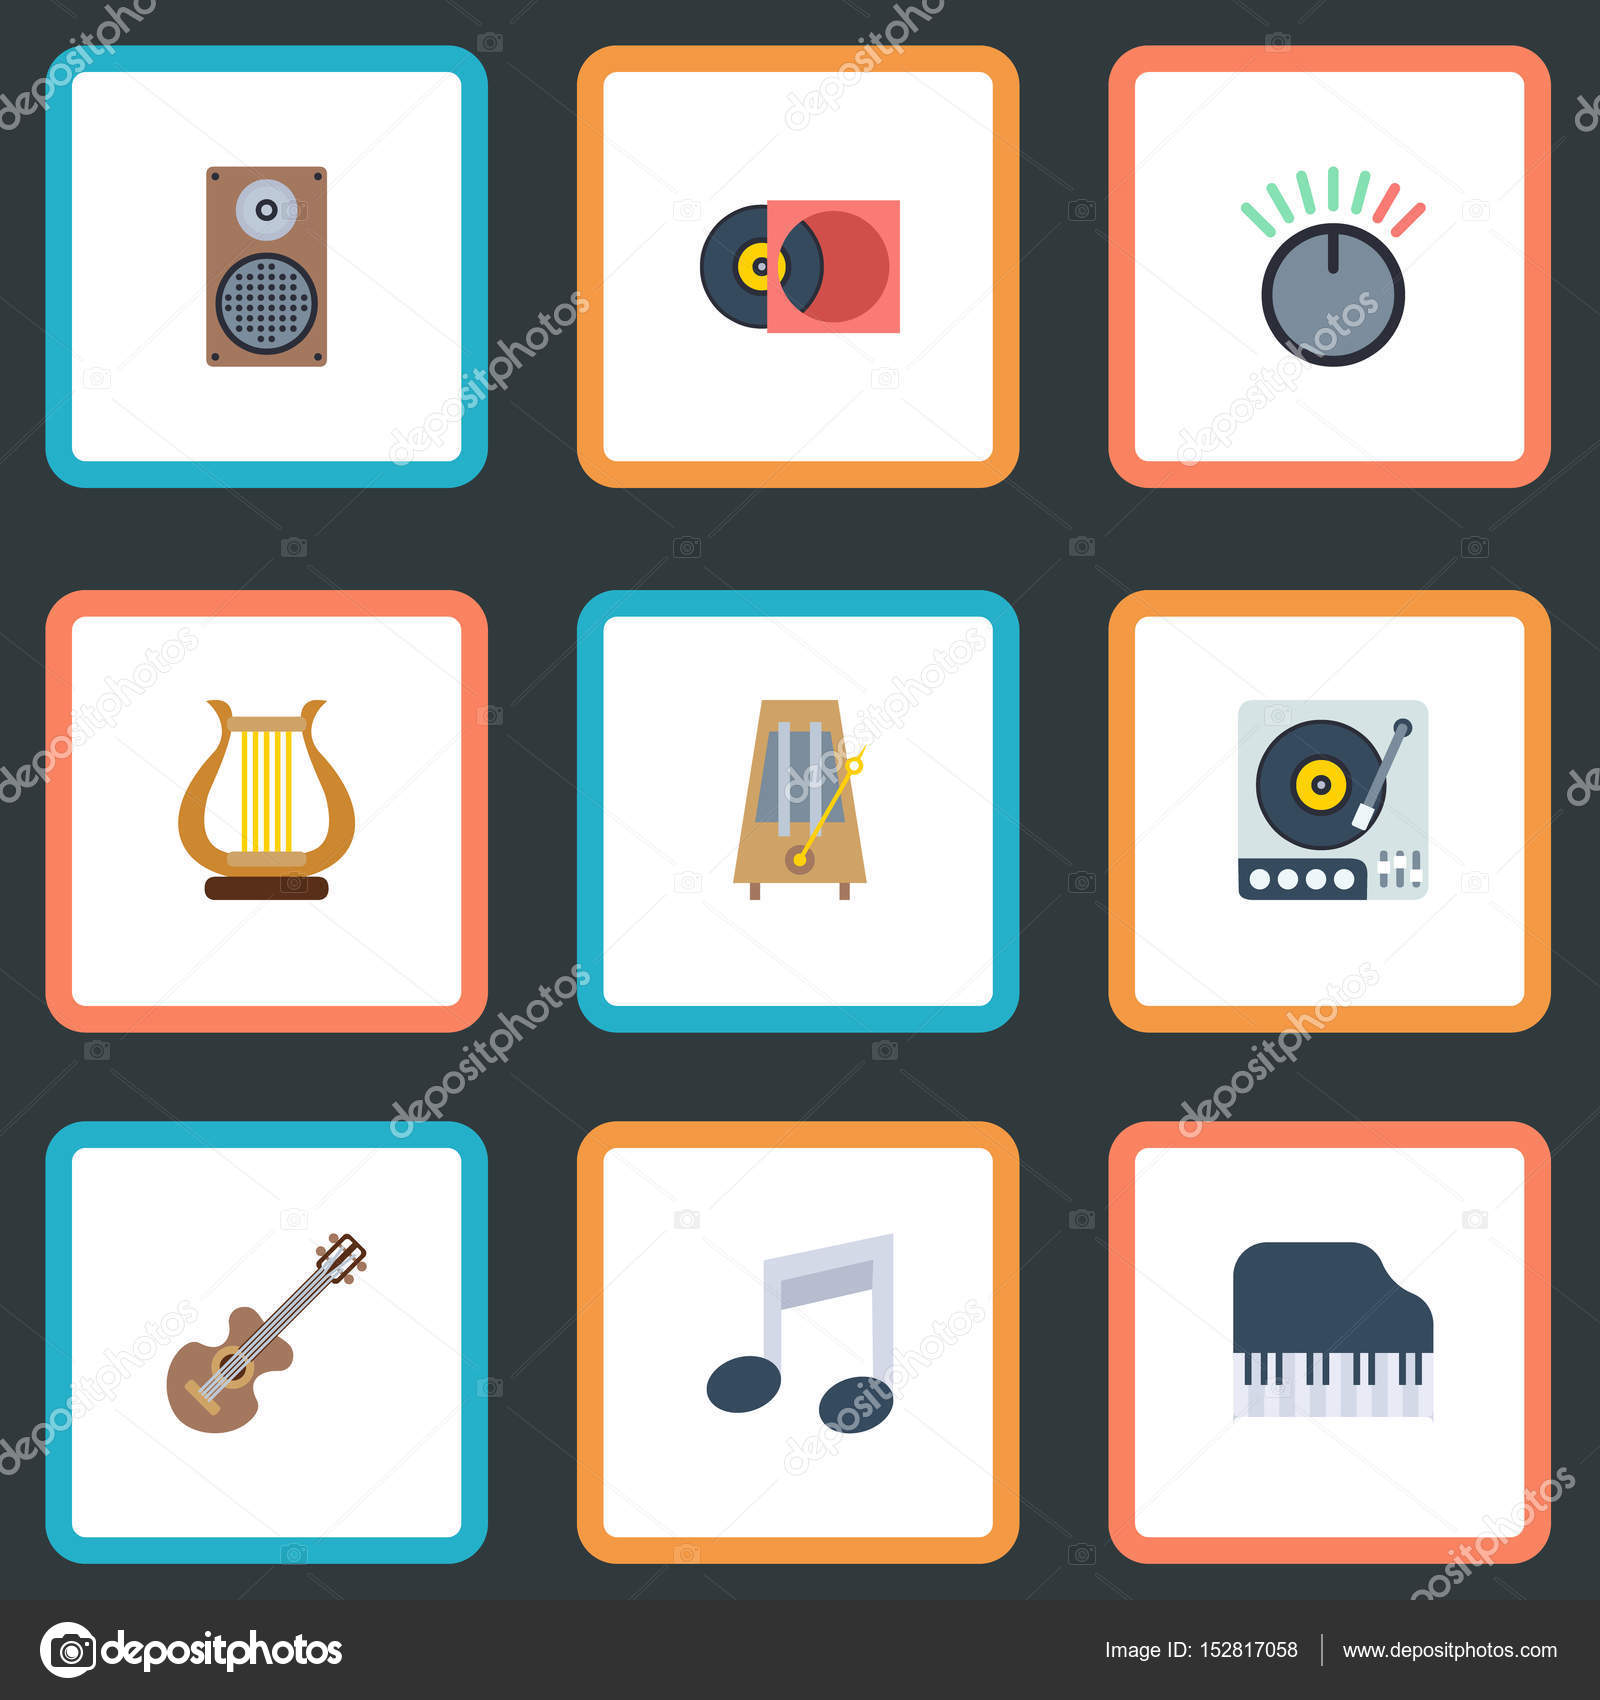 Flat Octave Keyboard Acoustic Knob And Other Vector Elements Set